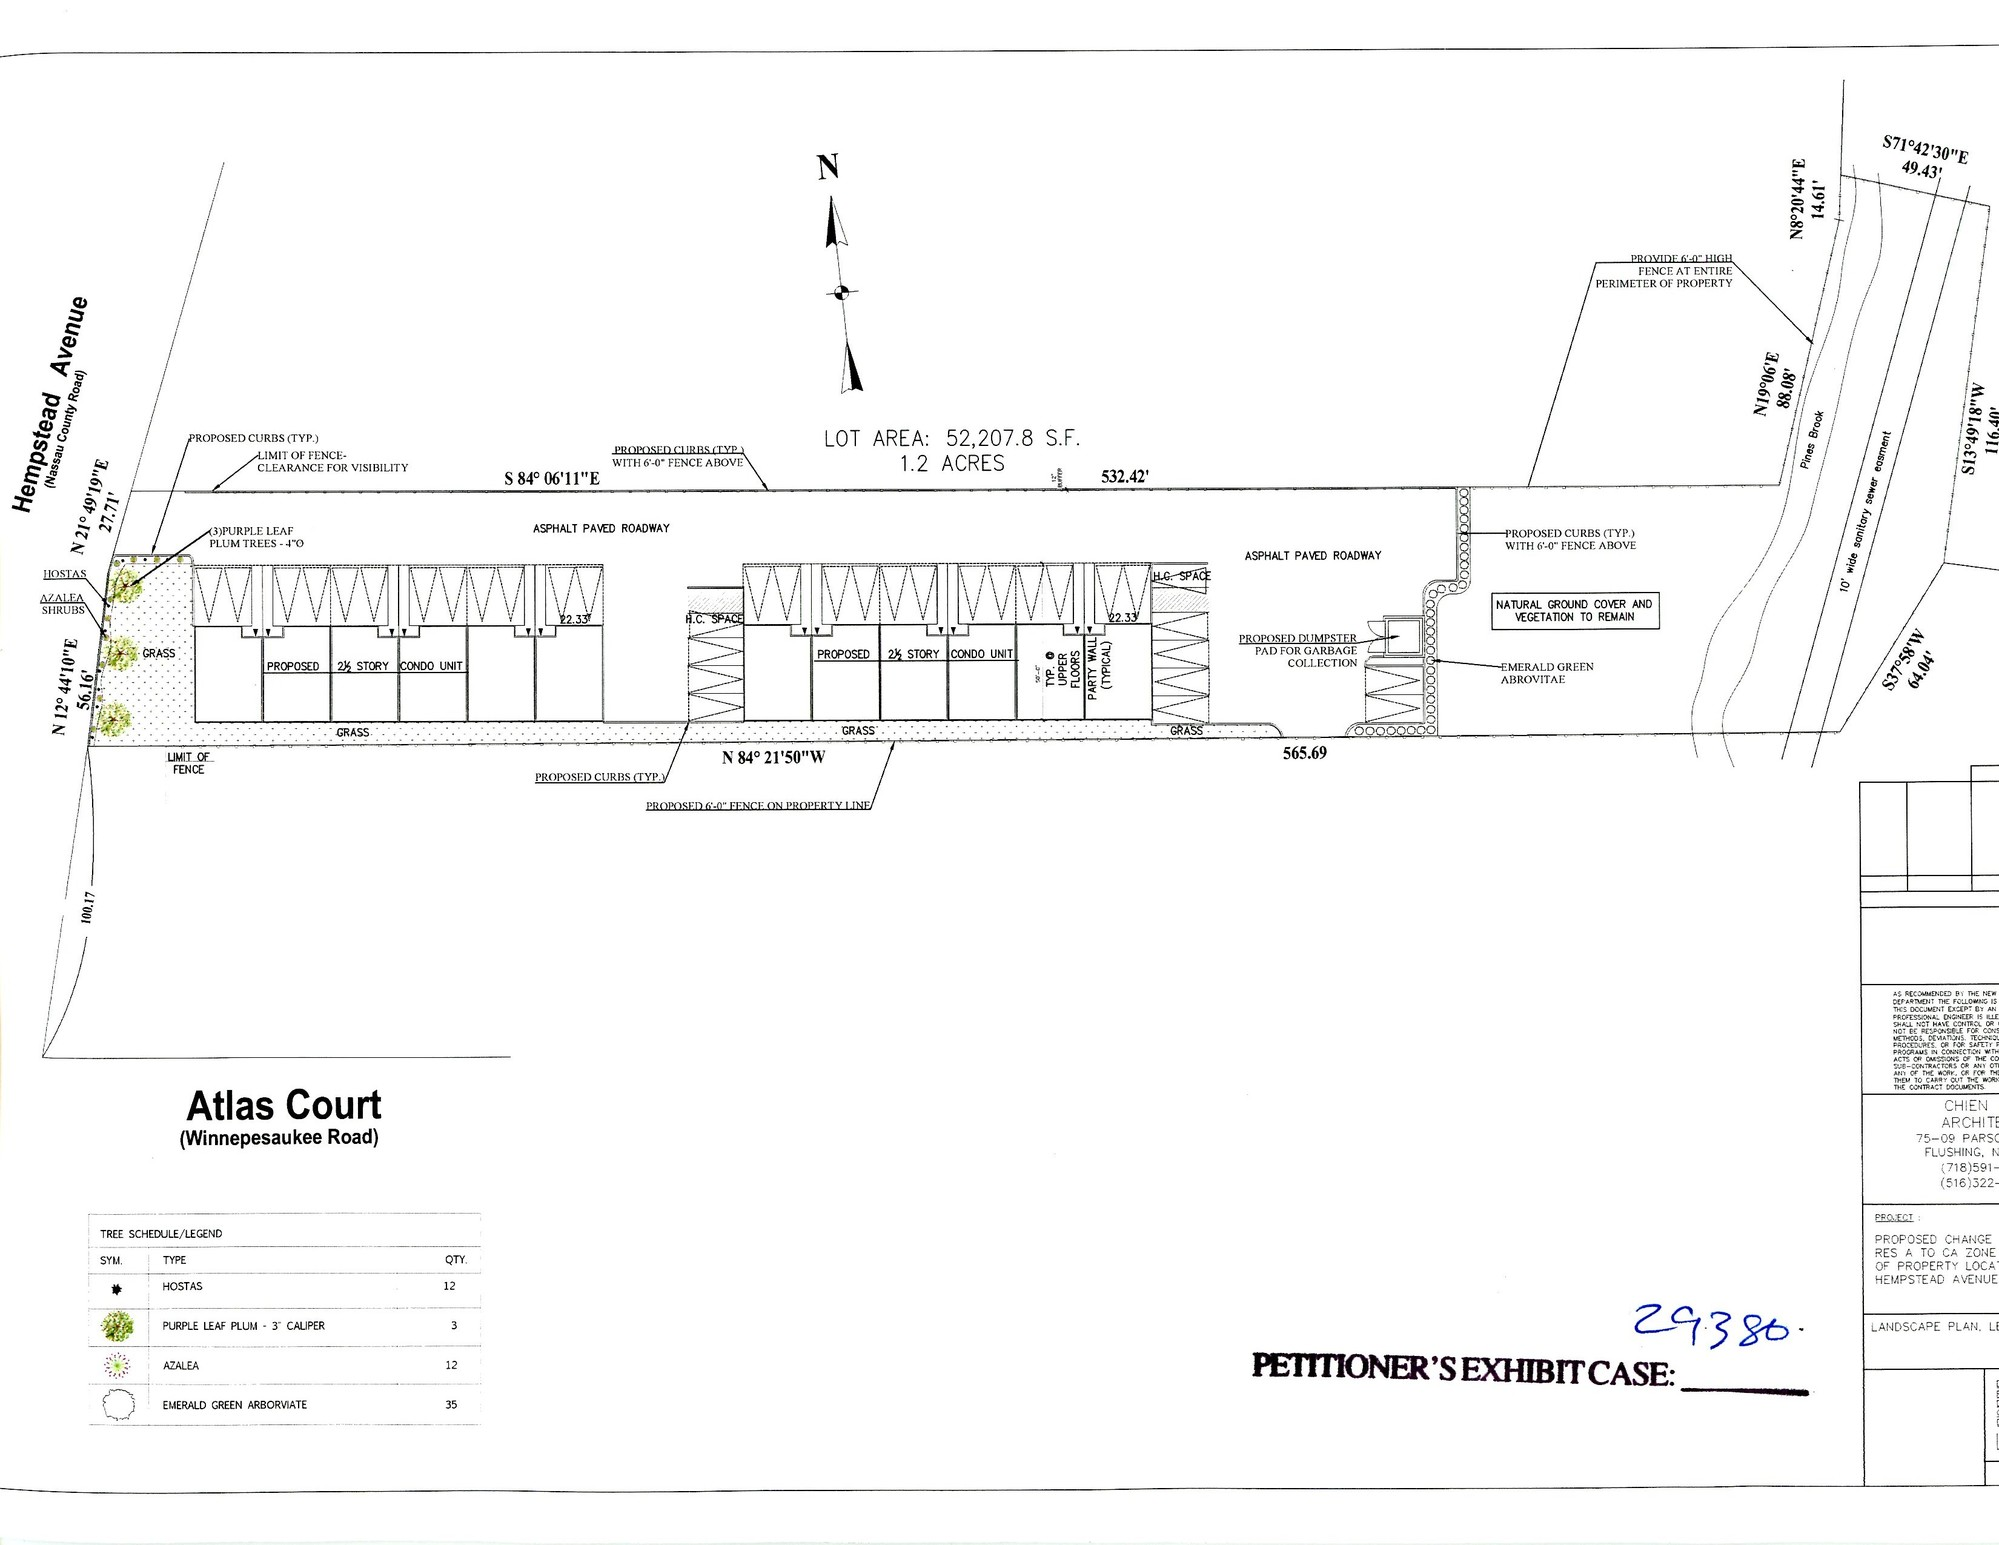 Blueprints for the proposed development.